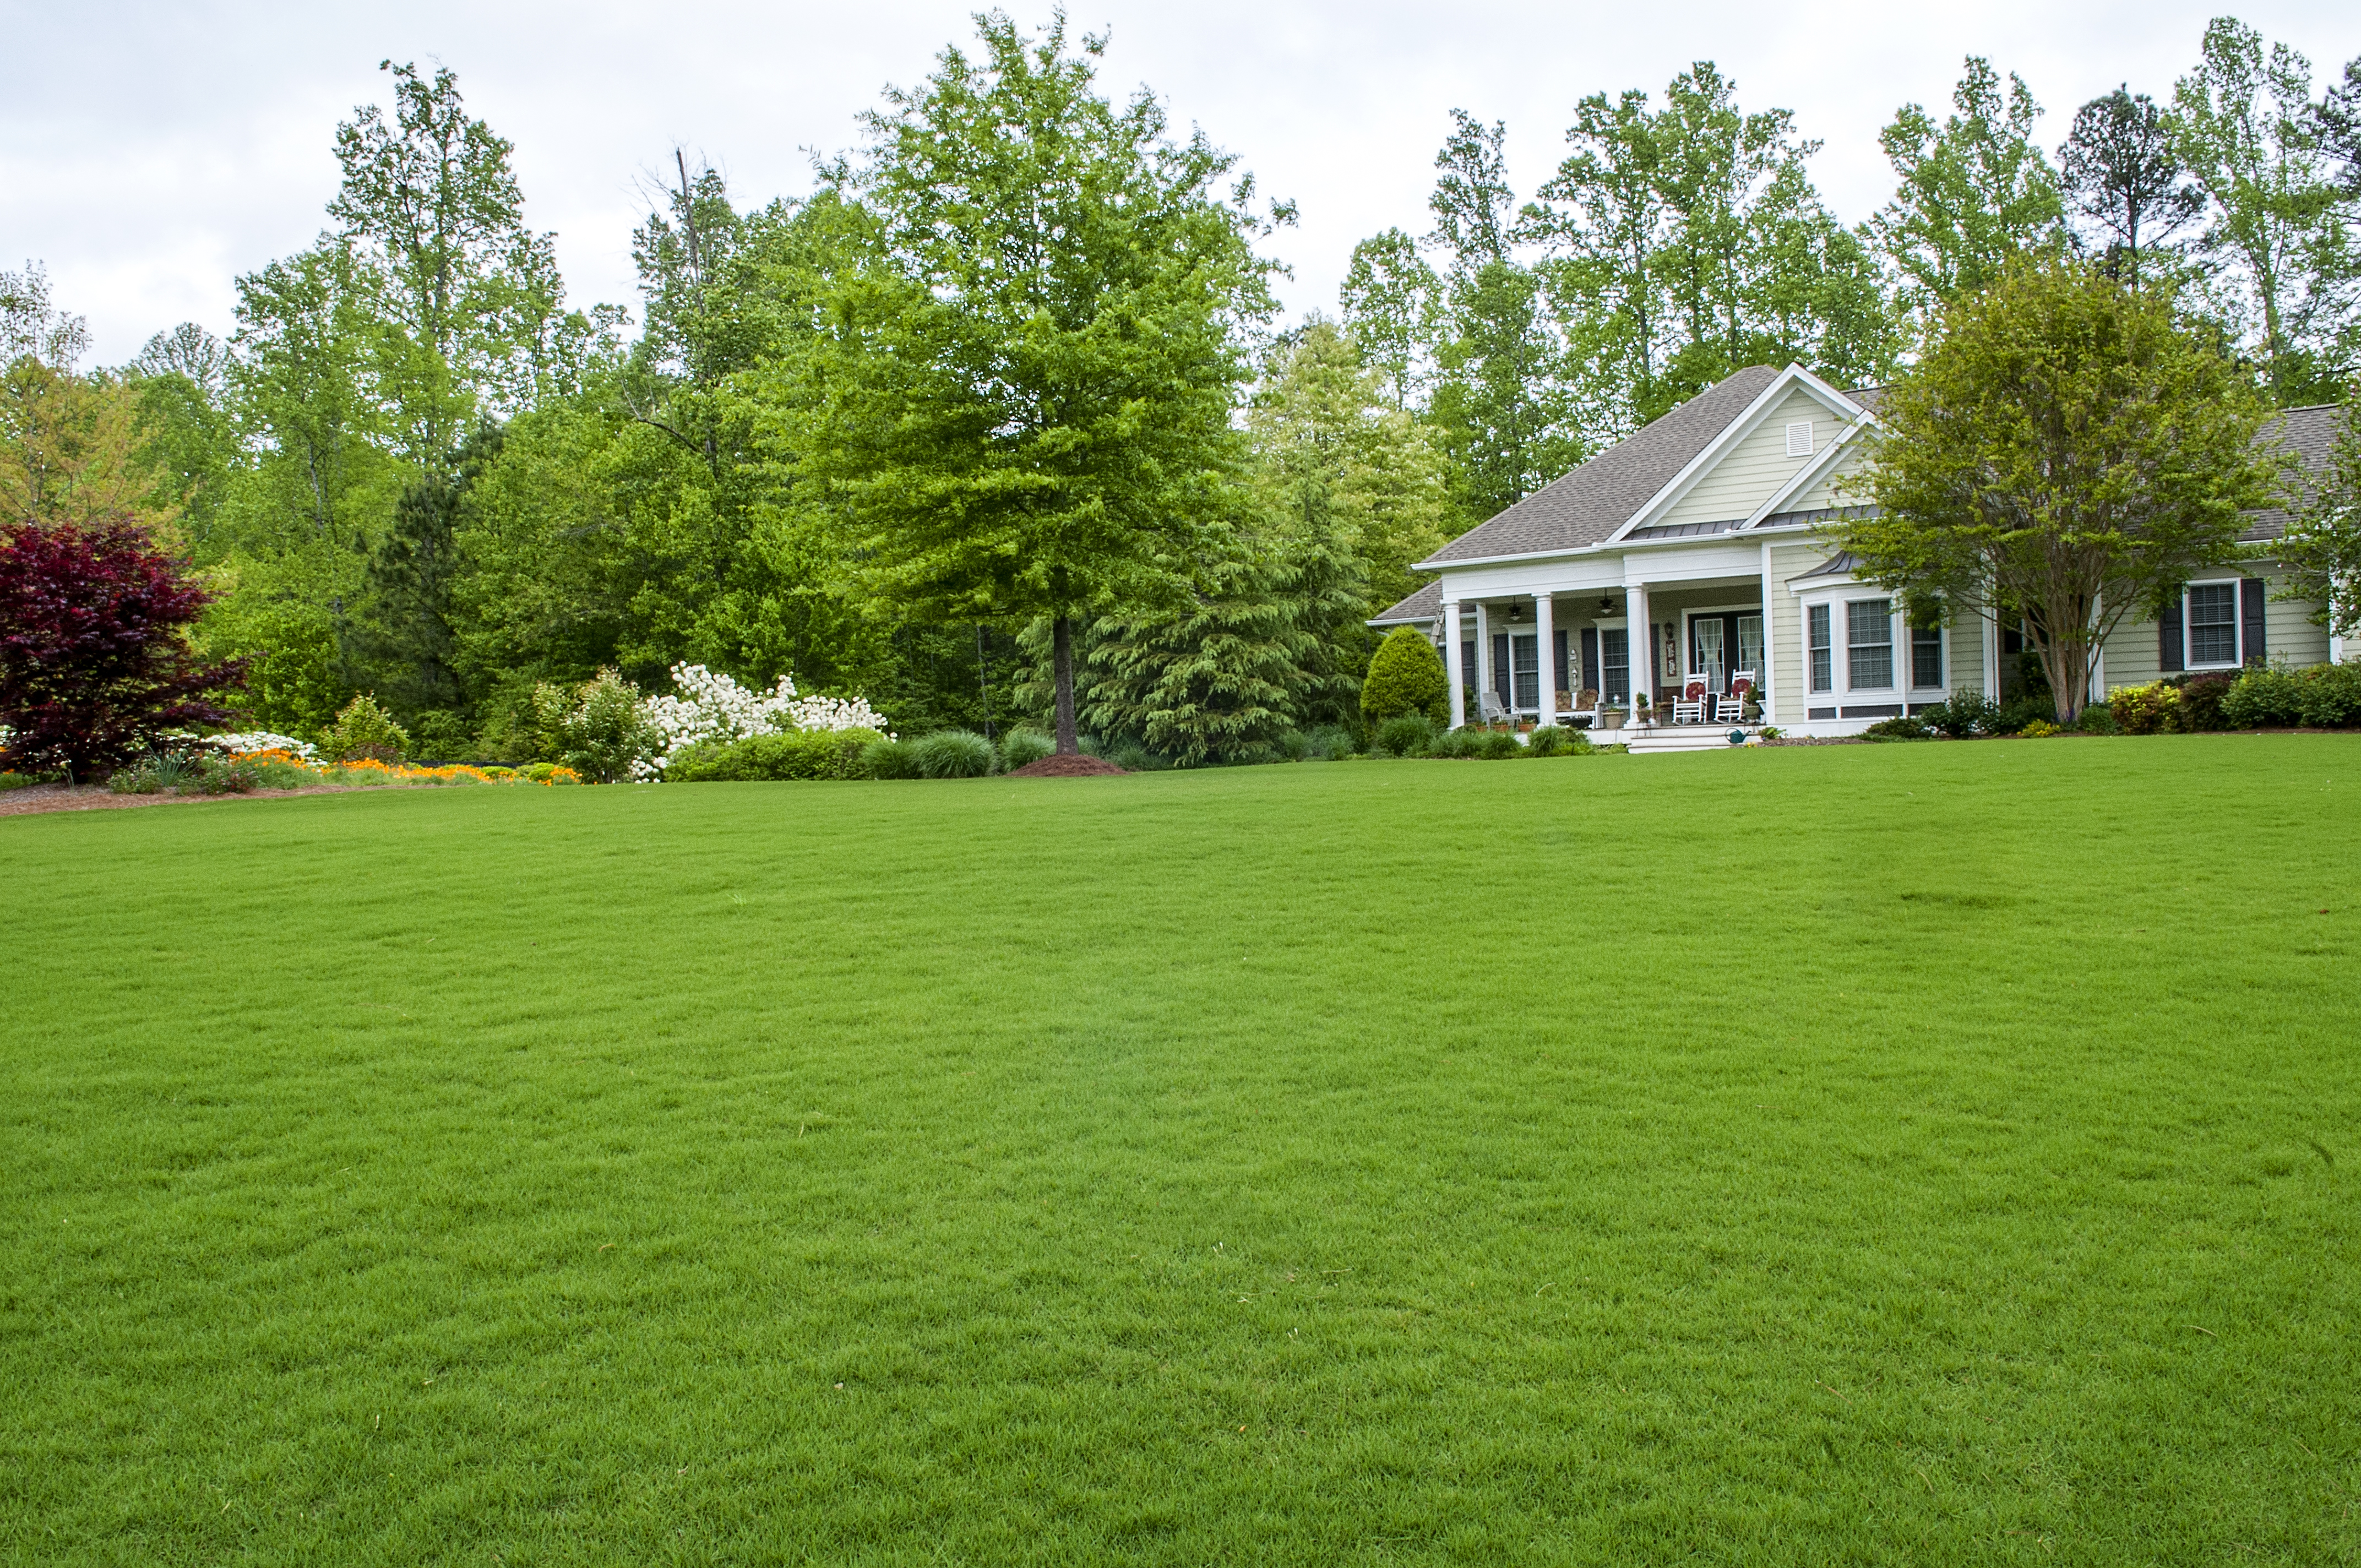 Lawn Care Tips - Frisella Nursery